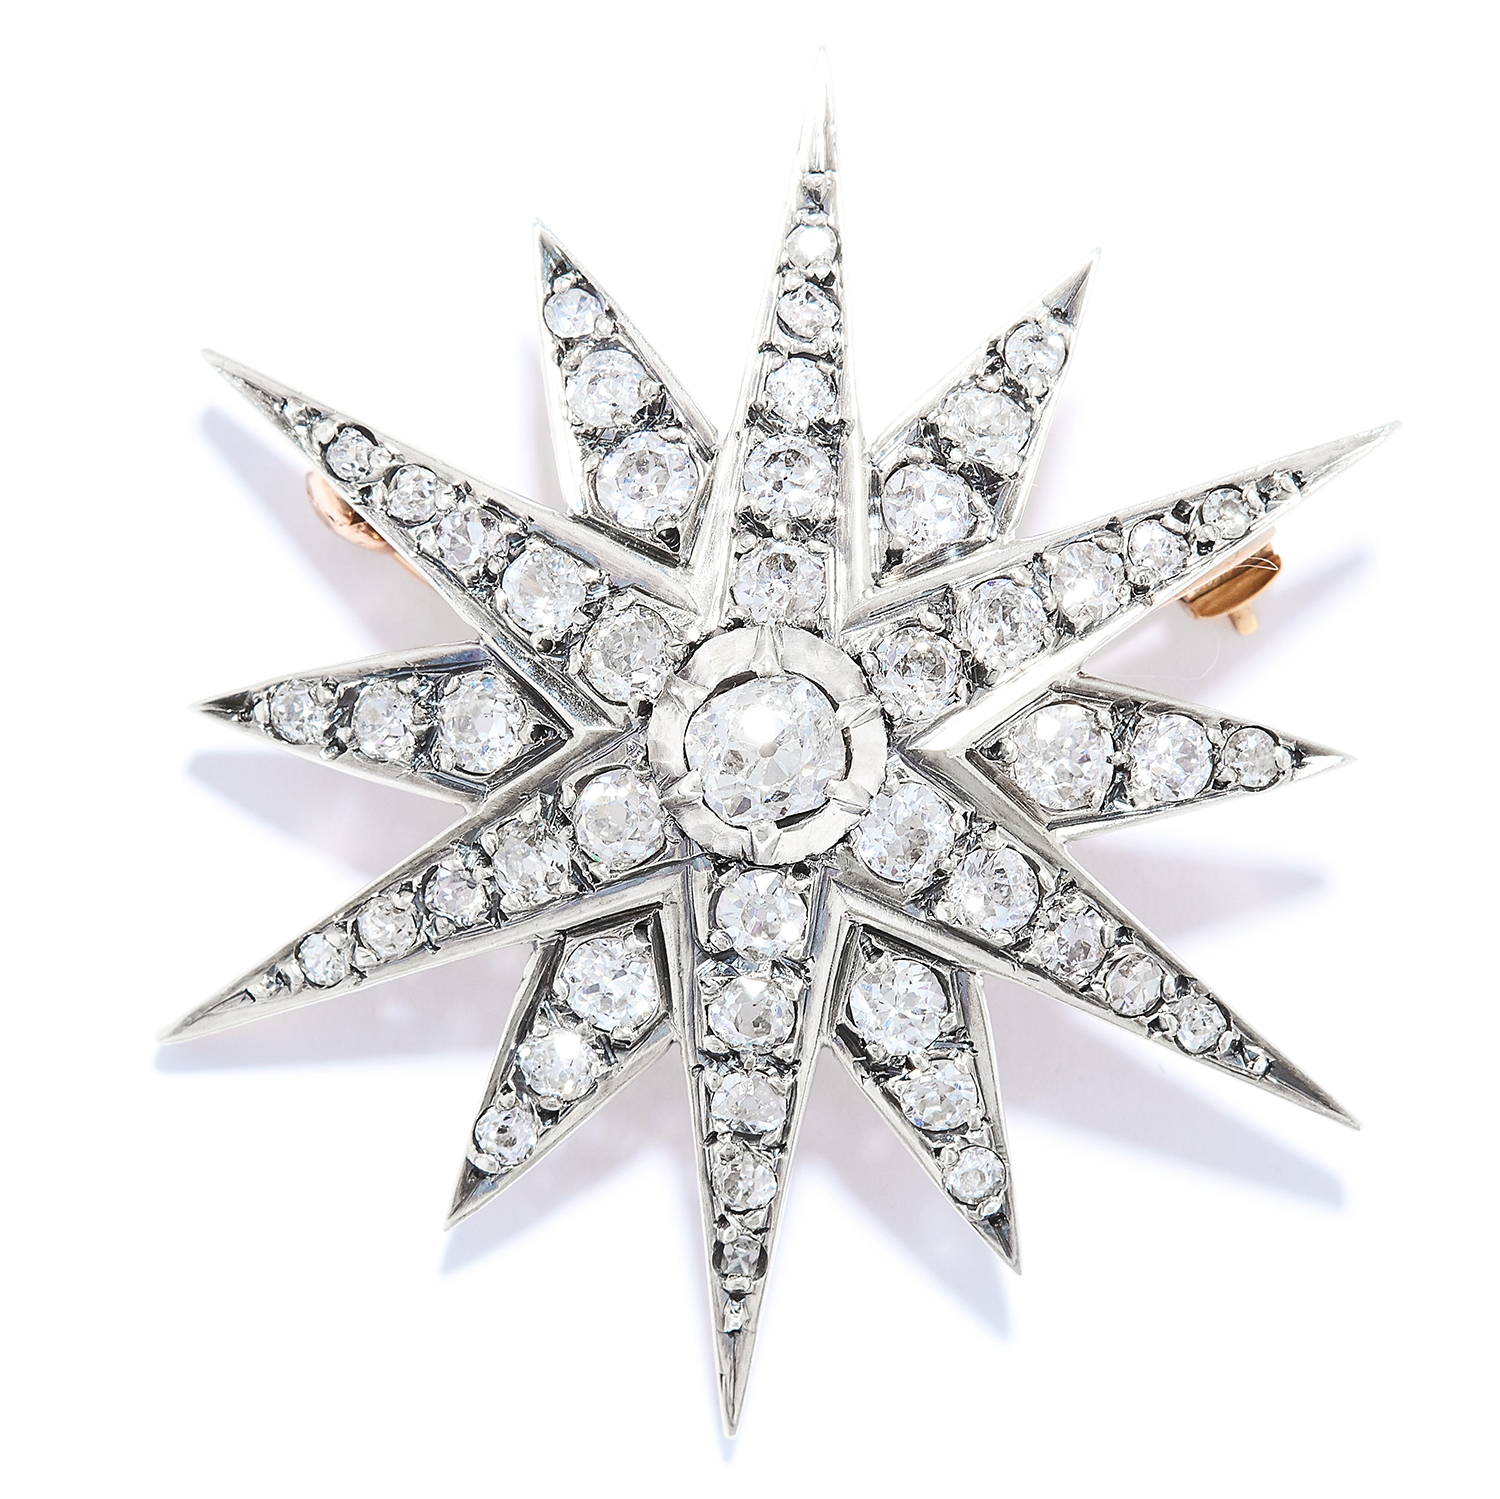 ANTIQUE 3.60 CARAT DIAMOND STAR BROOCH in yellow gold, set with old cut diamonds totalling